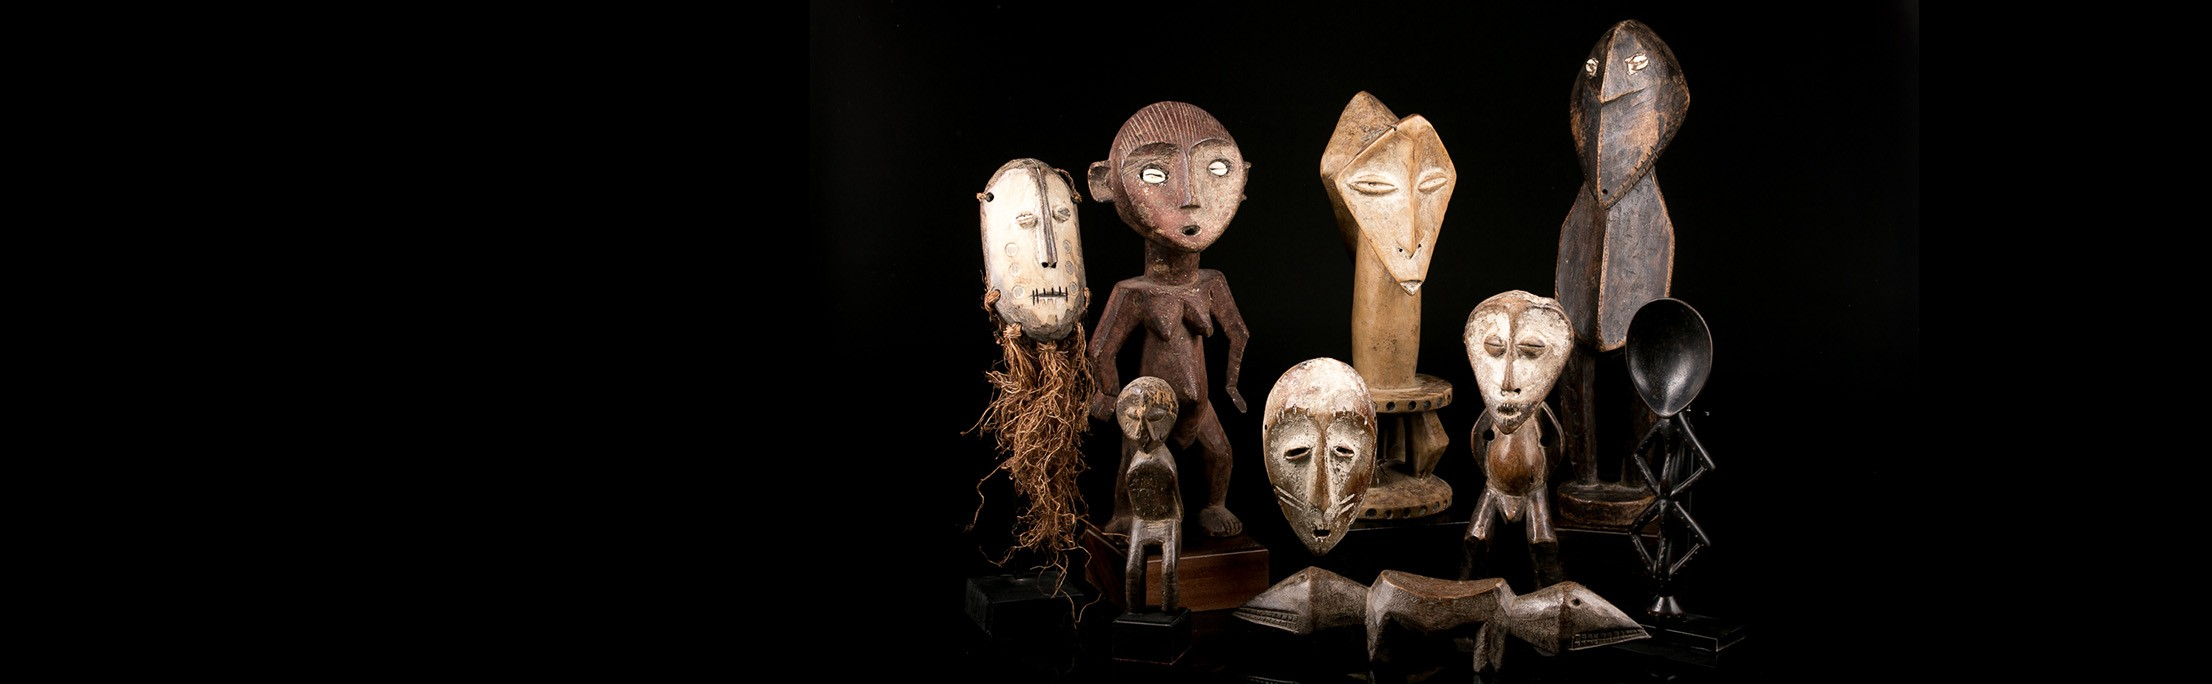 African statues and African Lega masks: authentic art from the Congo